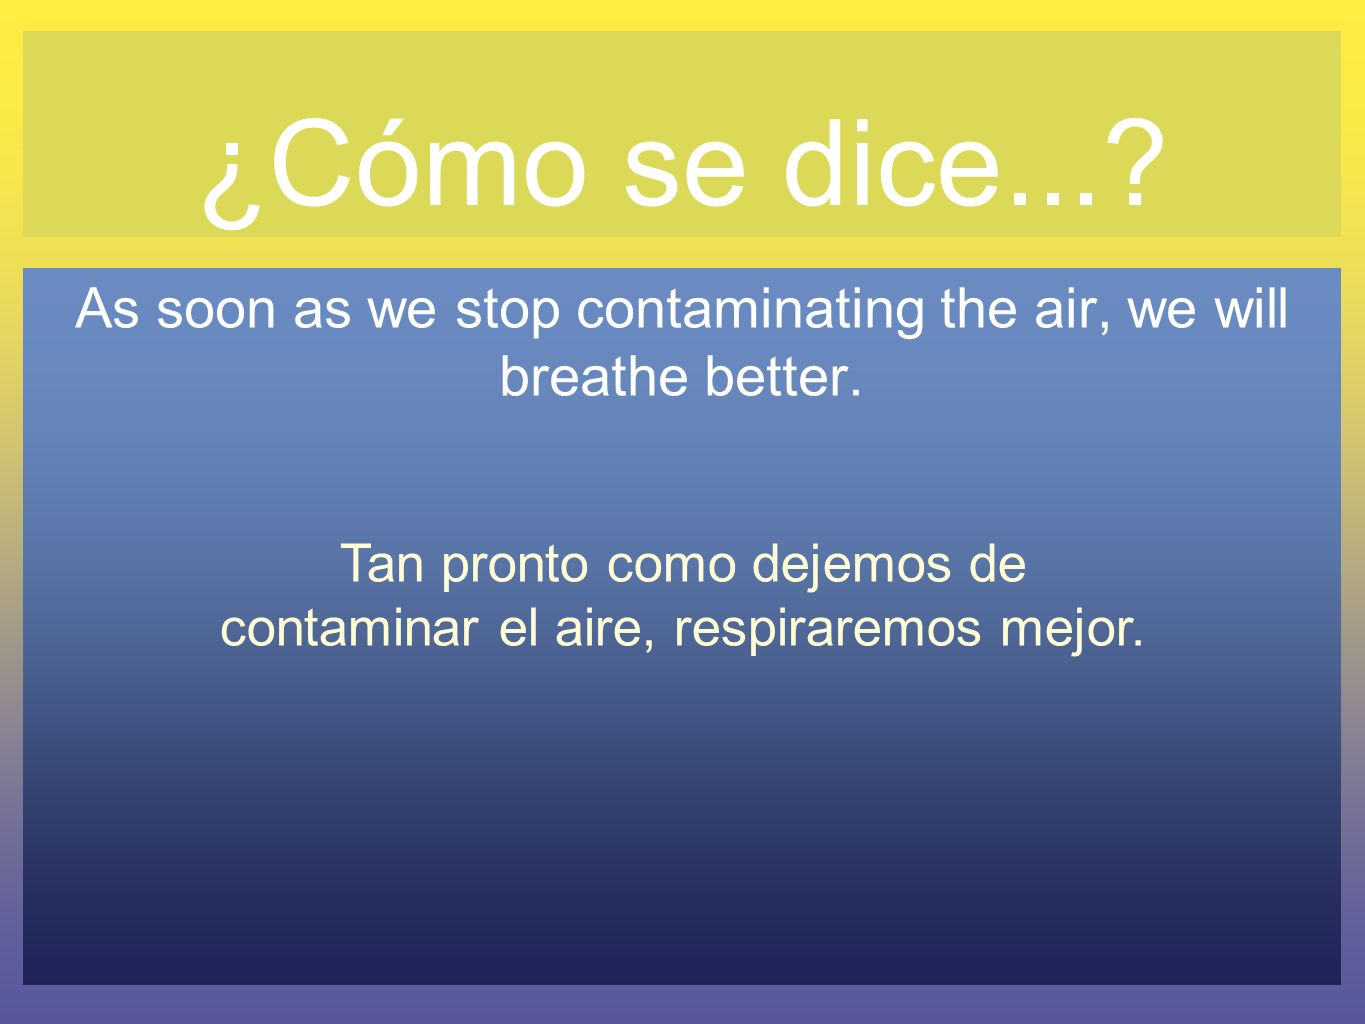 ¿Cómo se dice...? As soon as we stop contaminating the air, we will breathe better. Tan pronto como dejemos de contaminar el aire, respiraremos mejor.